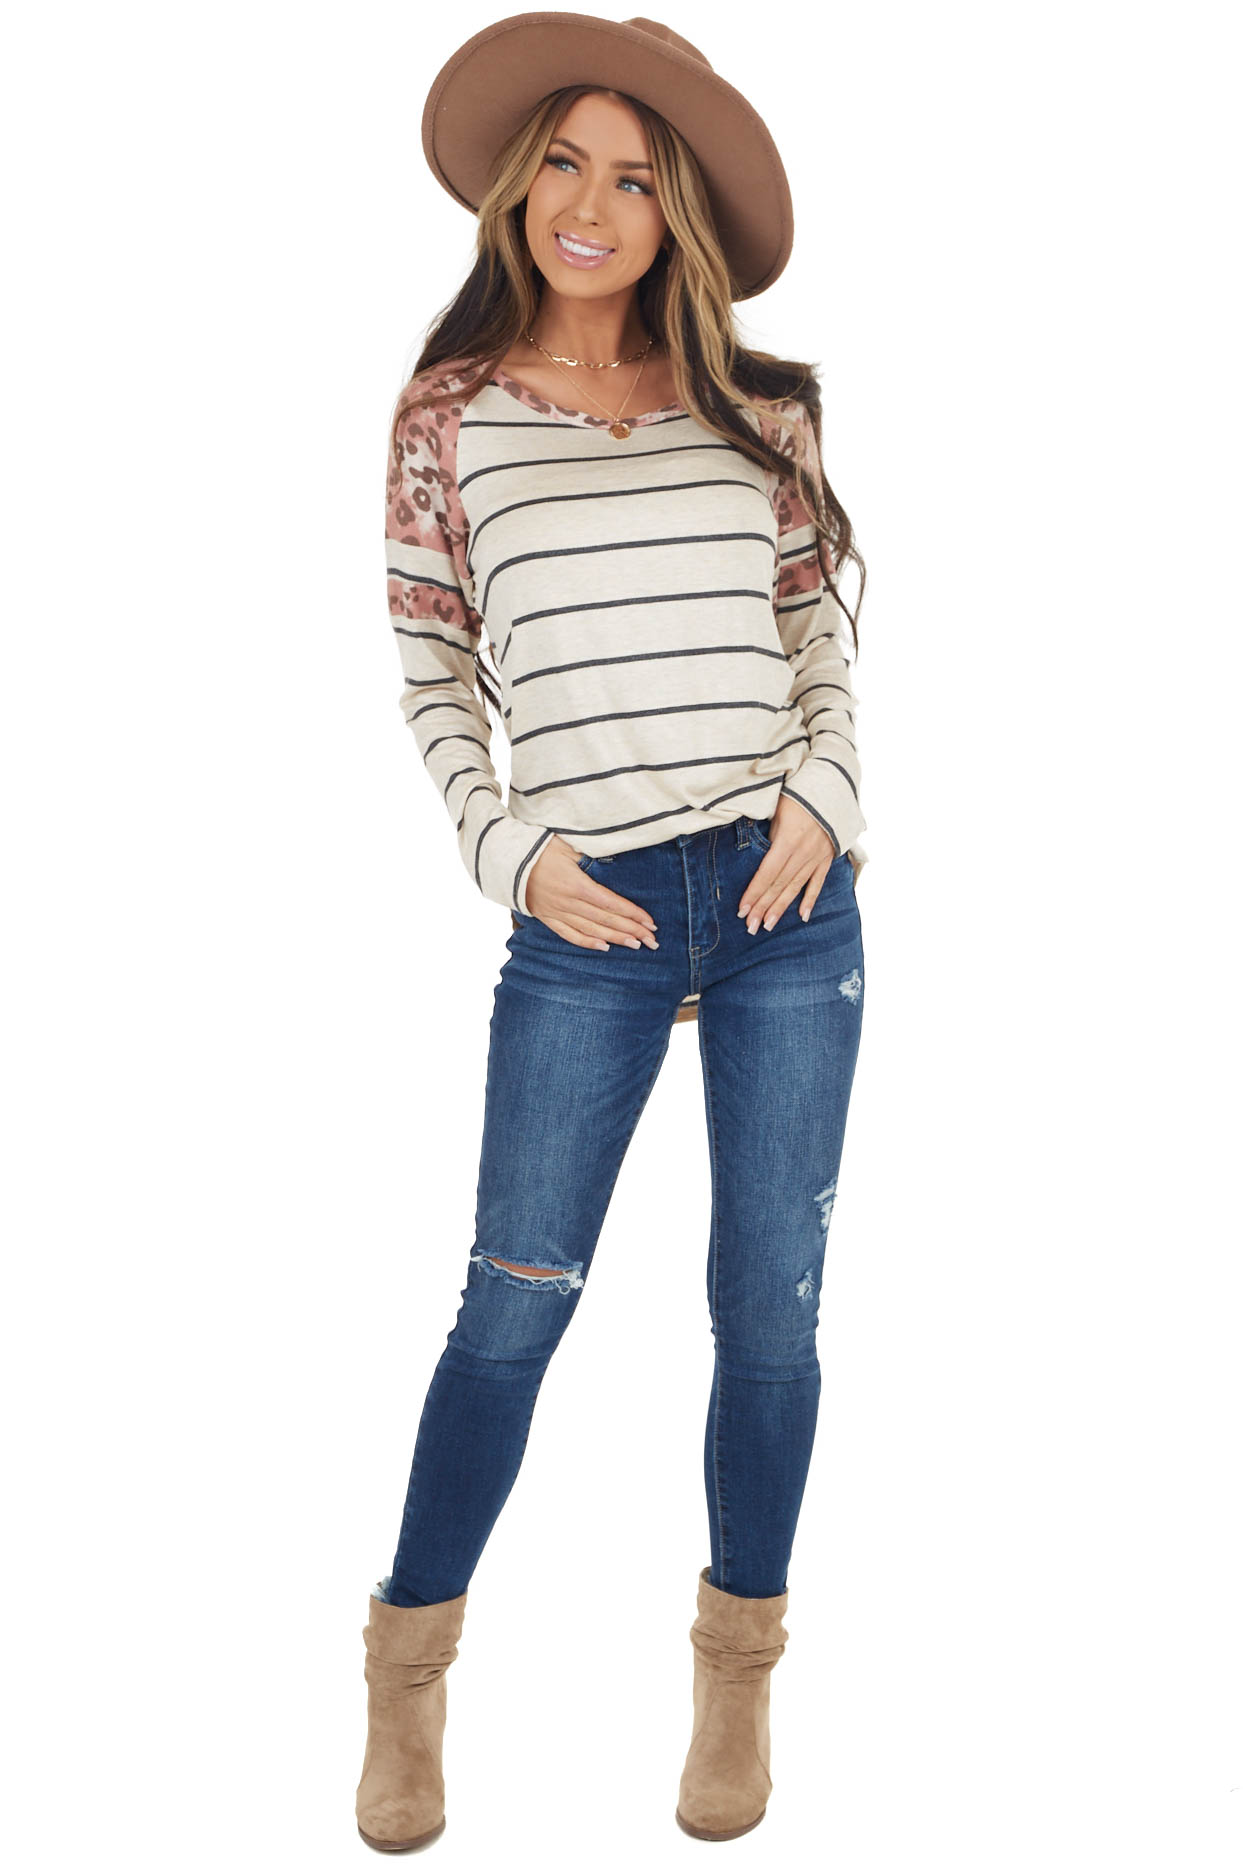 Heathered Beige Striped Knit Top with Leopard Print Contrast